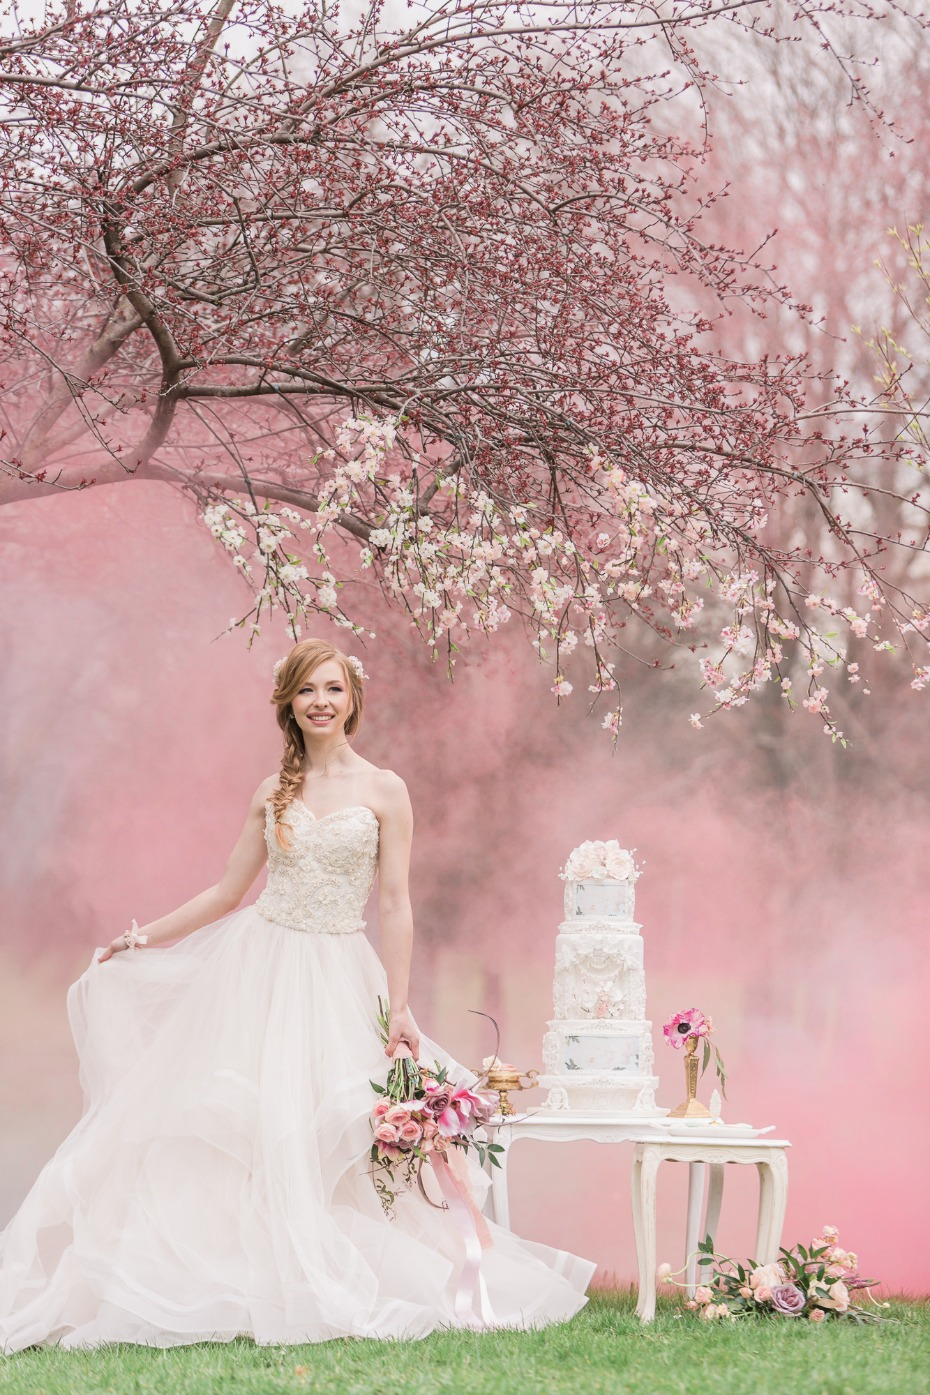 Cherry blossoms, smoke bombs and a lovely cake